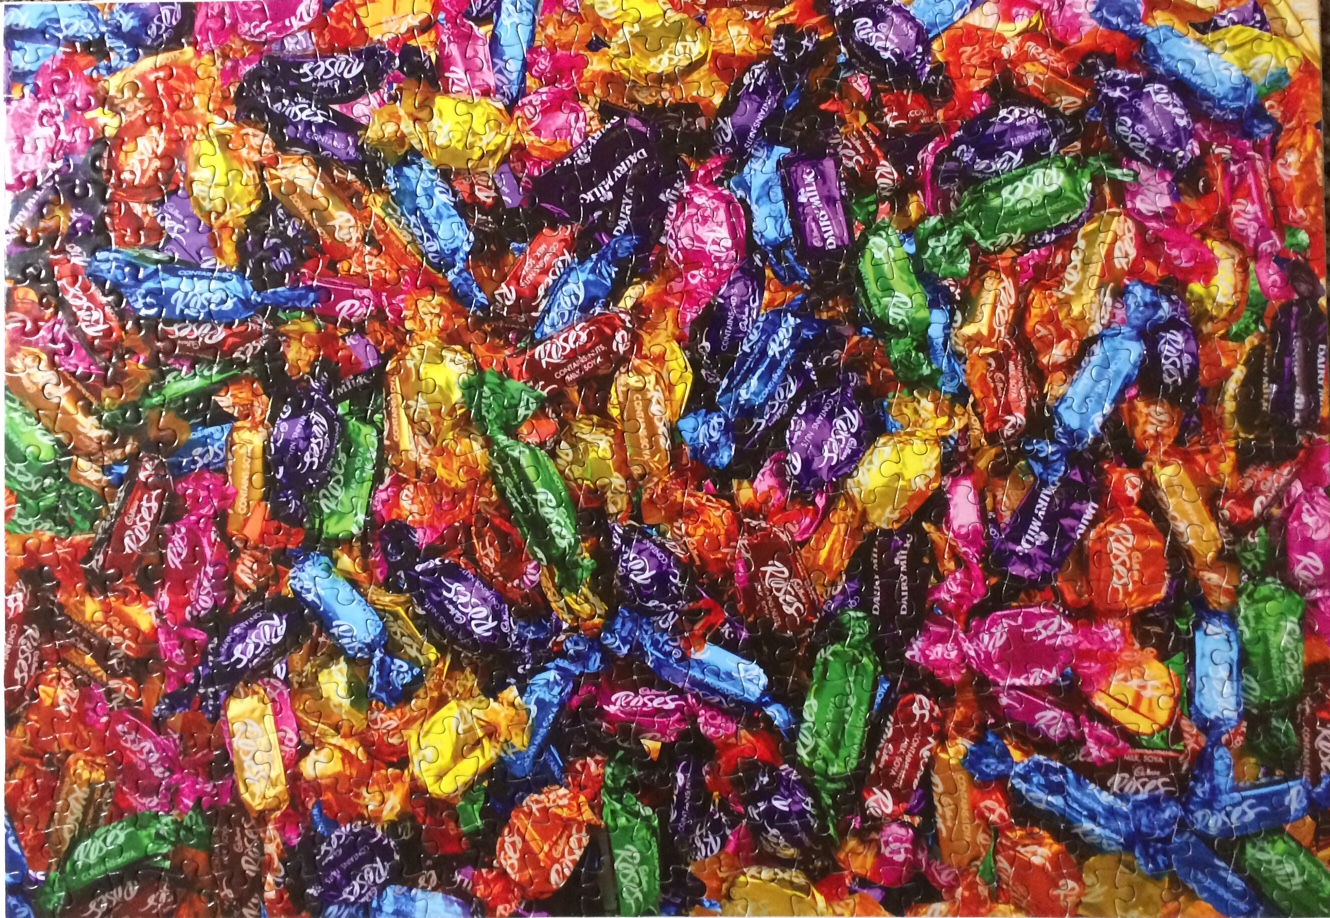 Title: Cadbury's Roses Jigsaw Puzzle No. of Pieces: 500 Size: 50 x 35cm - approximately 14